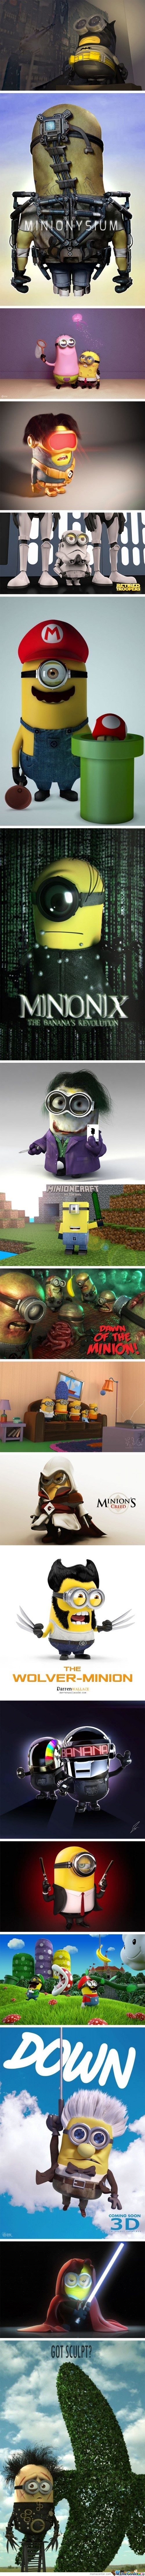 So..i Heard You Like Minions